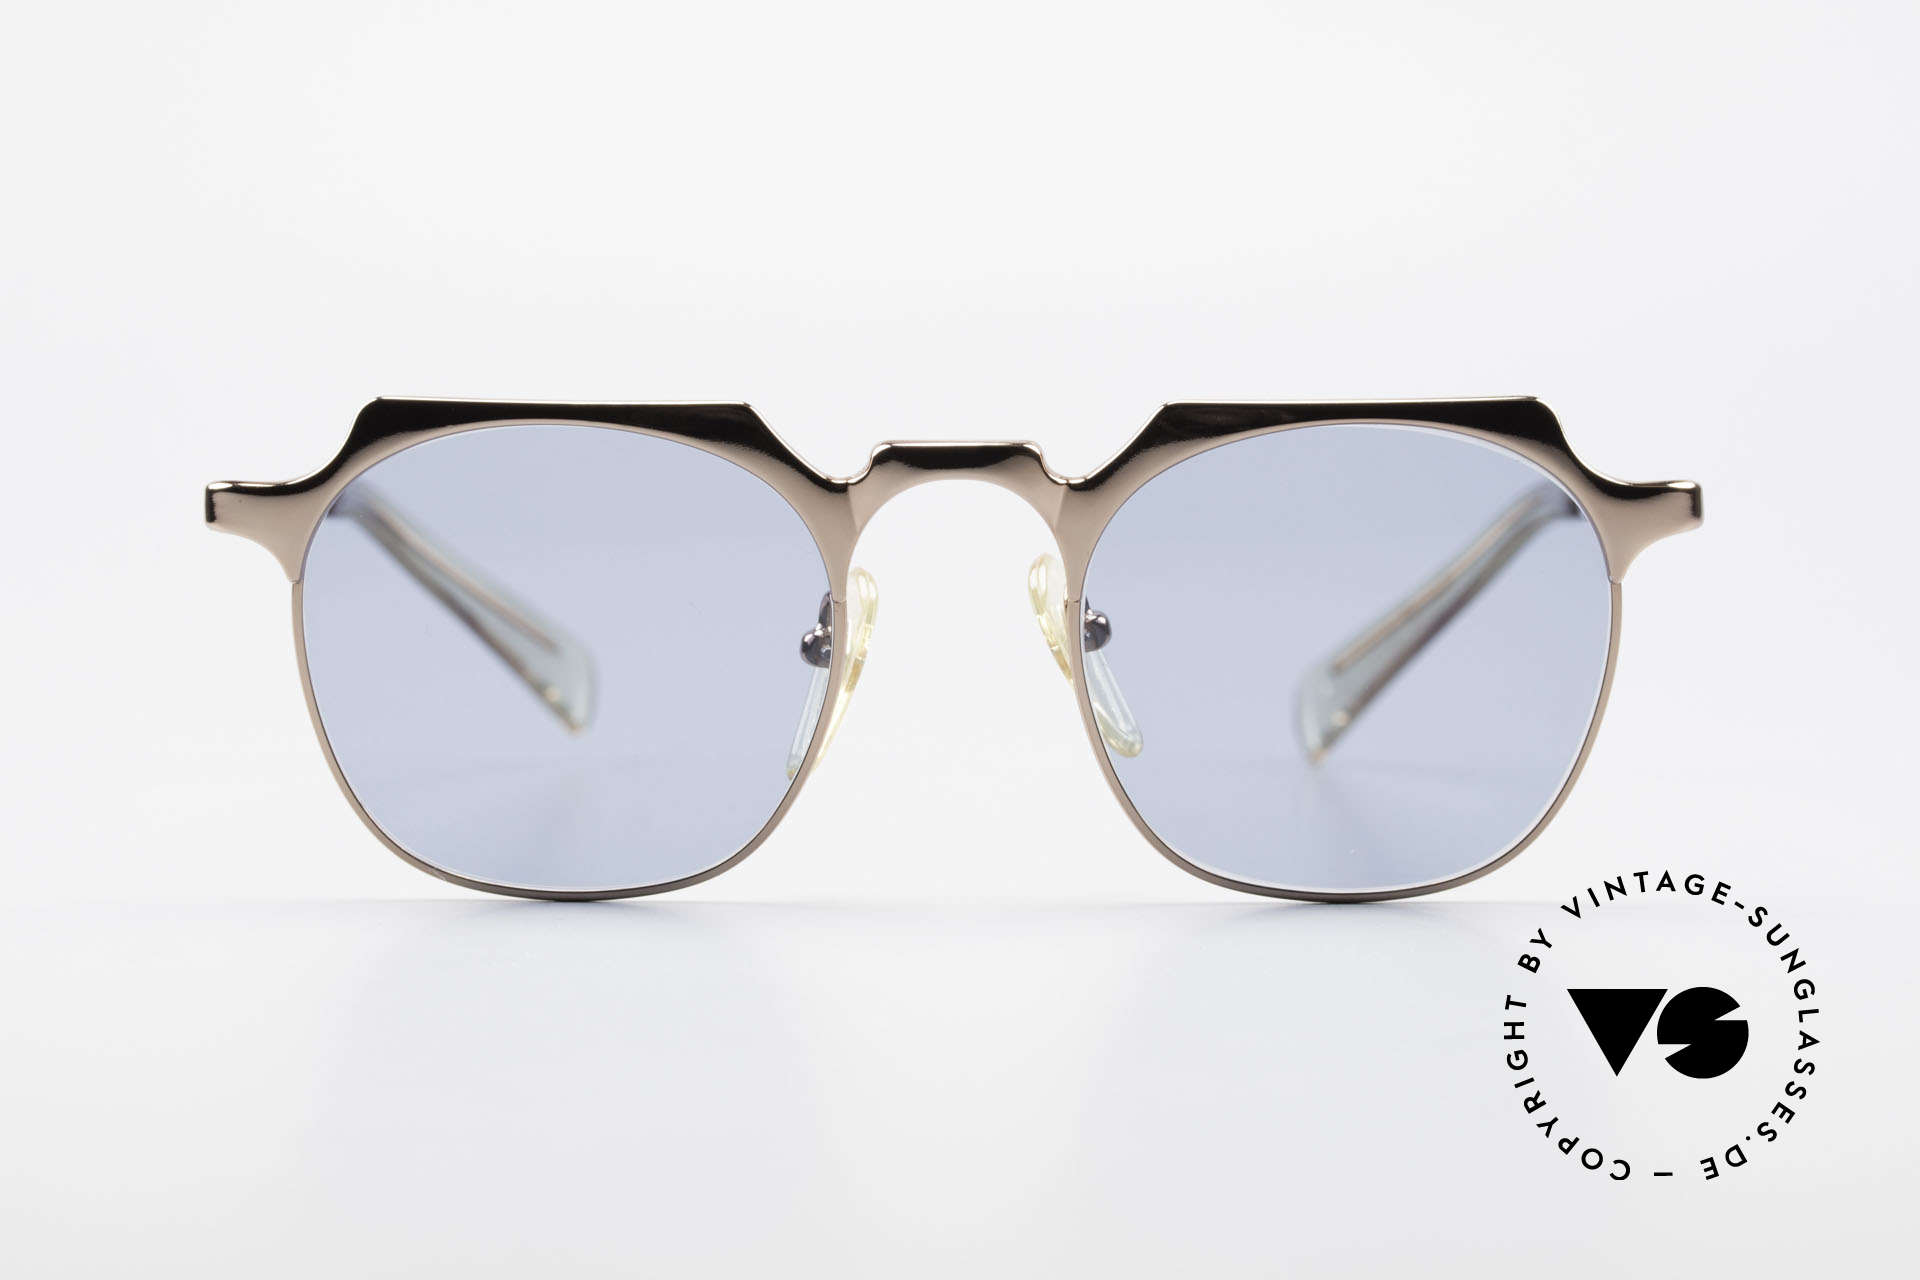 Jean Paul Gaultier 57-0171 Panto Designer Sunglasses, one of the top models of the Junior Gaultier Series, Made for Men and Women